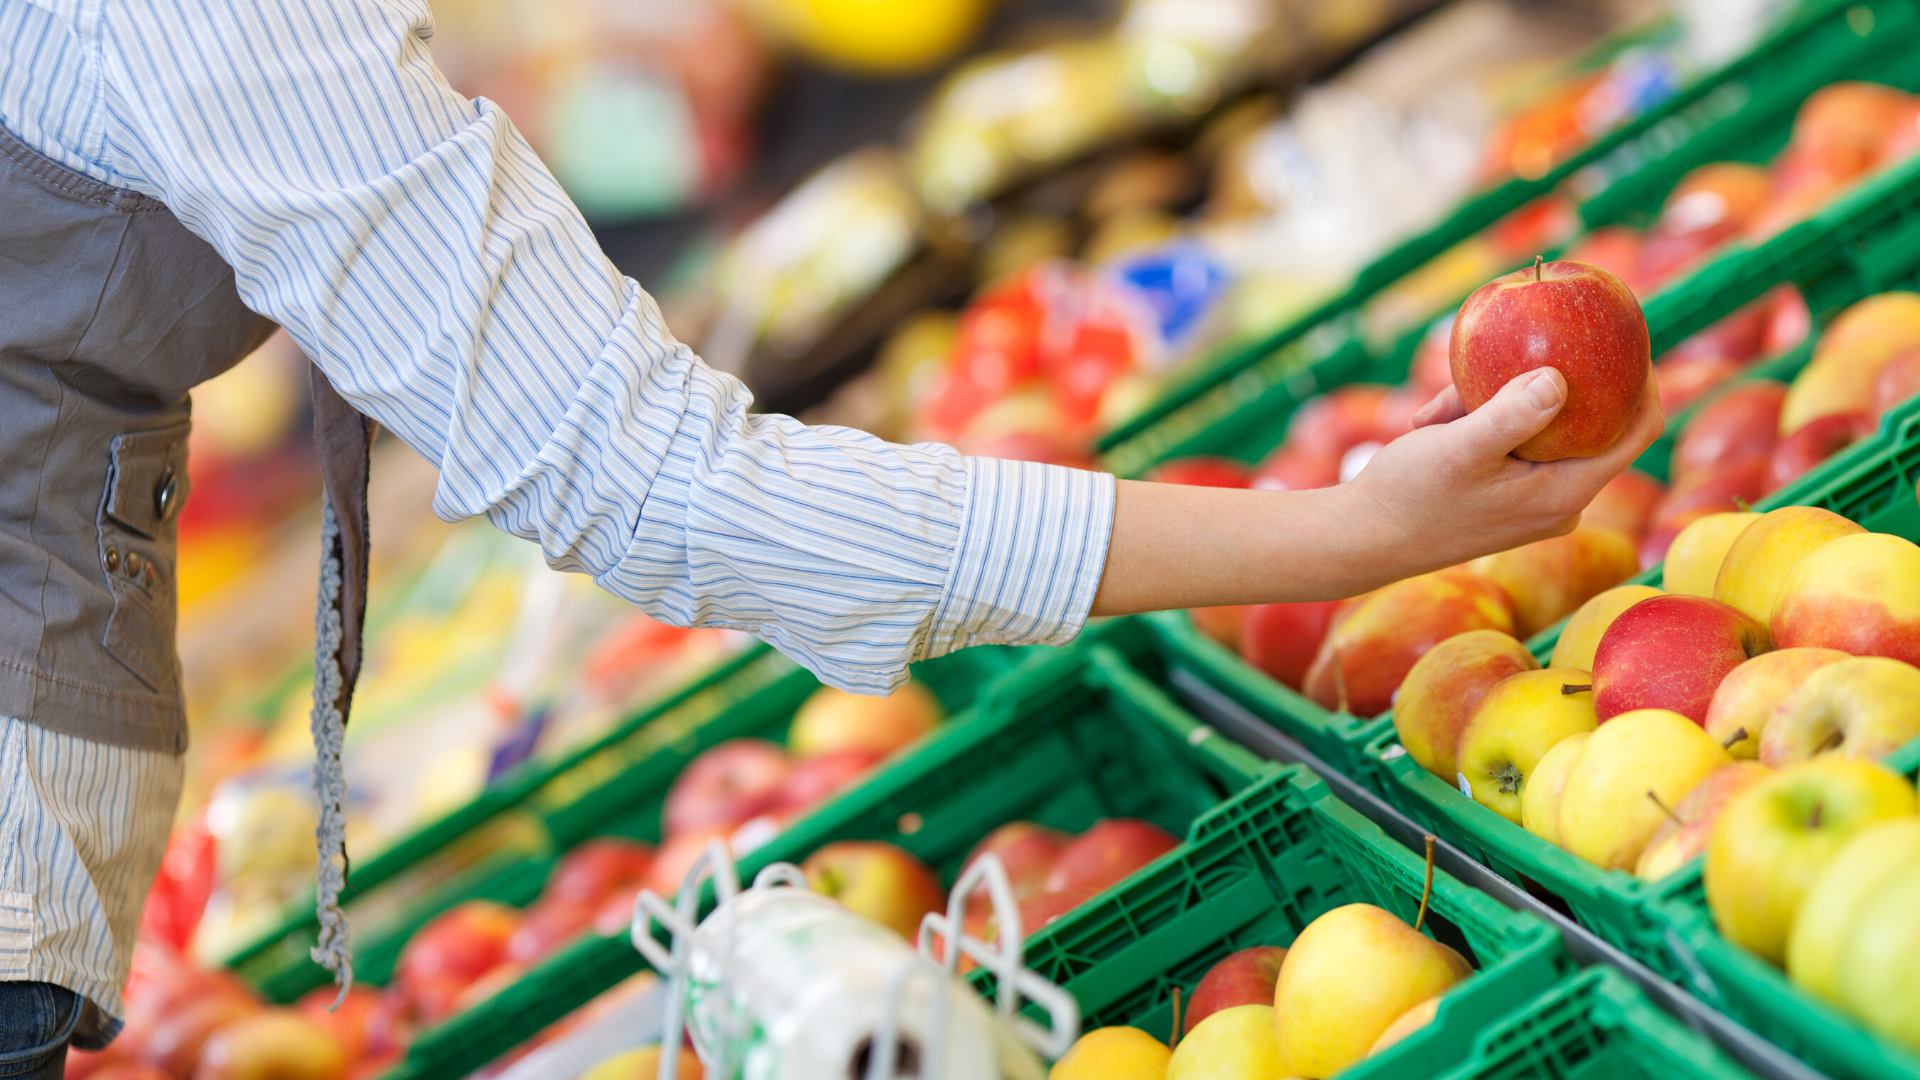 How Retailers Can Make Grocery Shopping A Habit